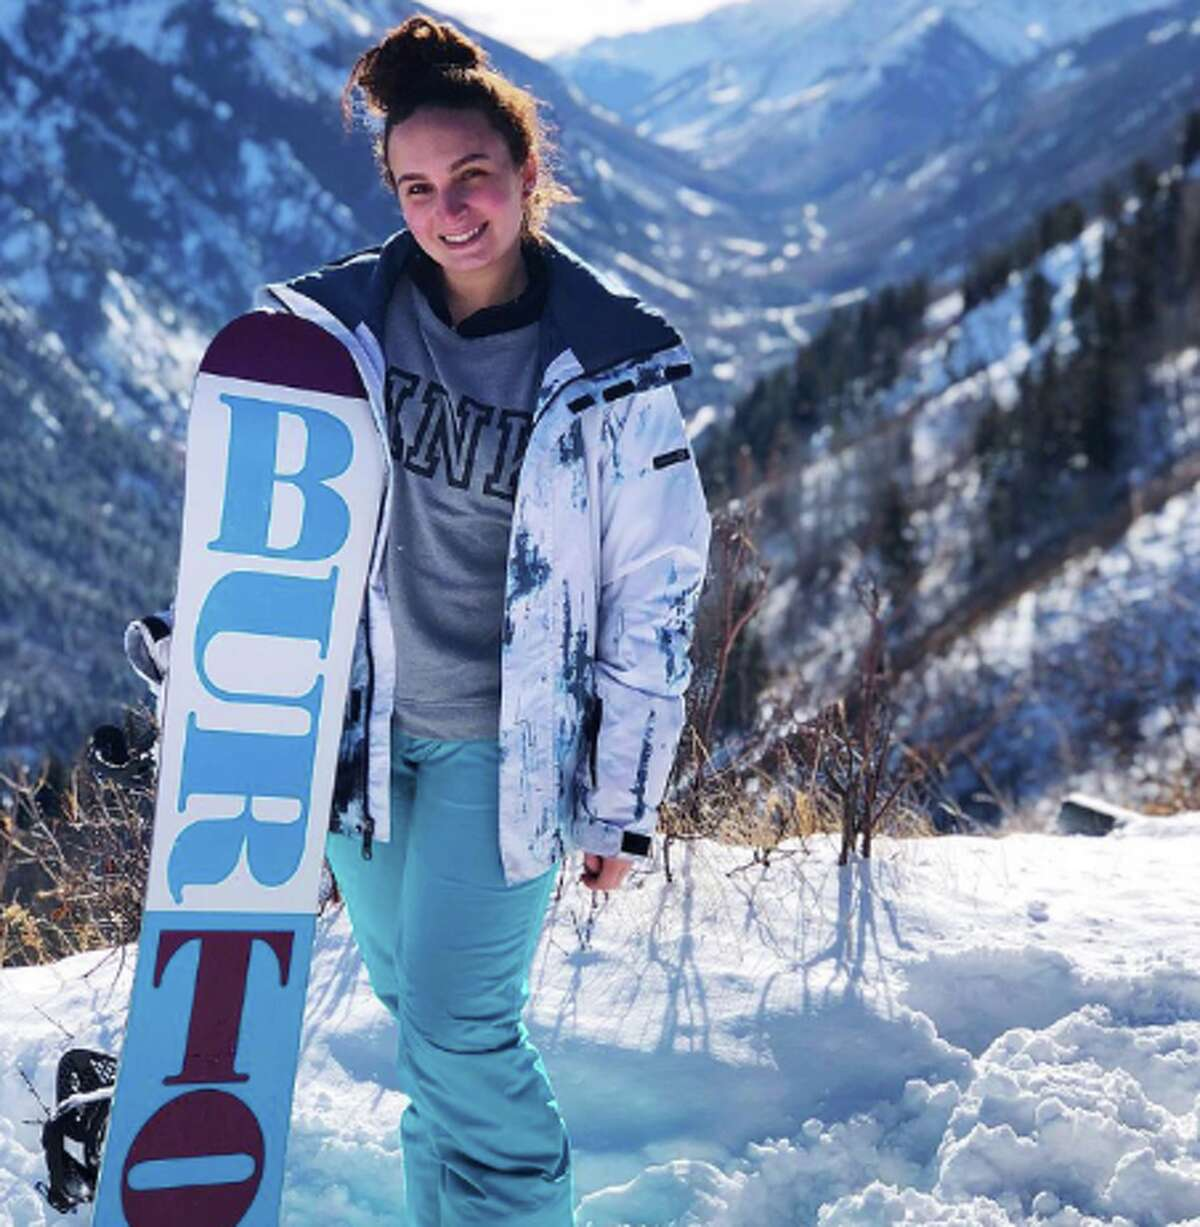 Jamey Abeles, 22 Profession: Full-time student at the University of Denver (DU) Year moved to Denver: 2014 Monthly rent: $680 for duplex shared with five people Why she moved: